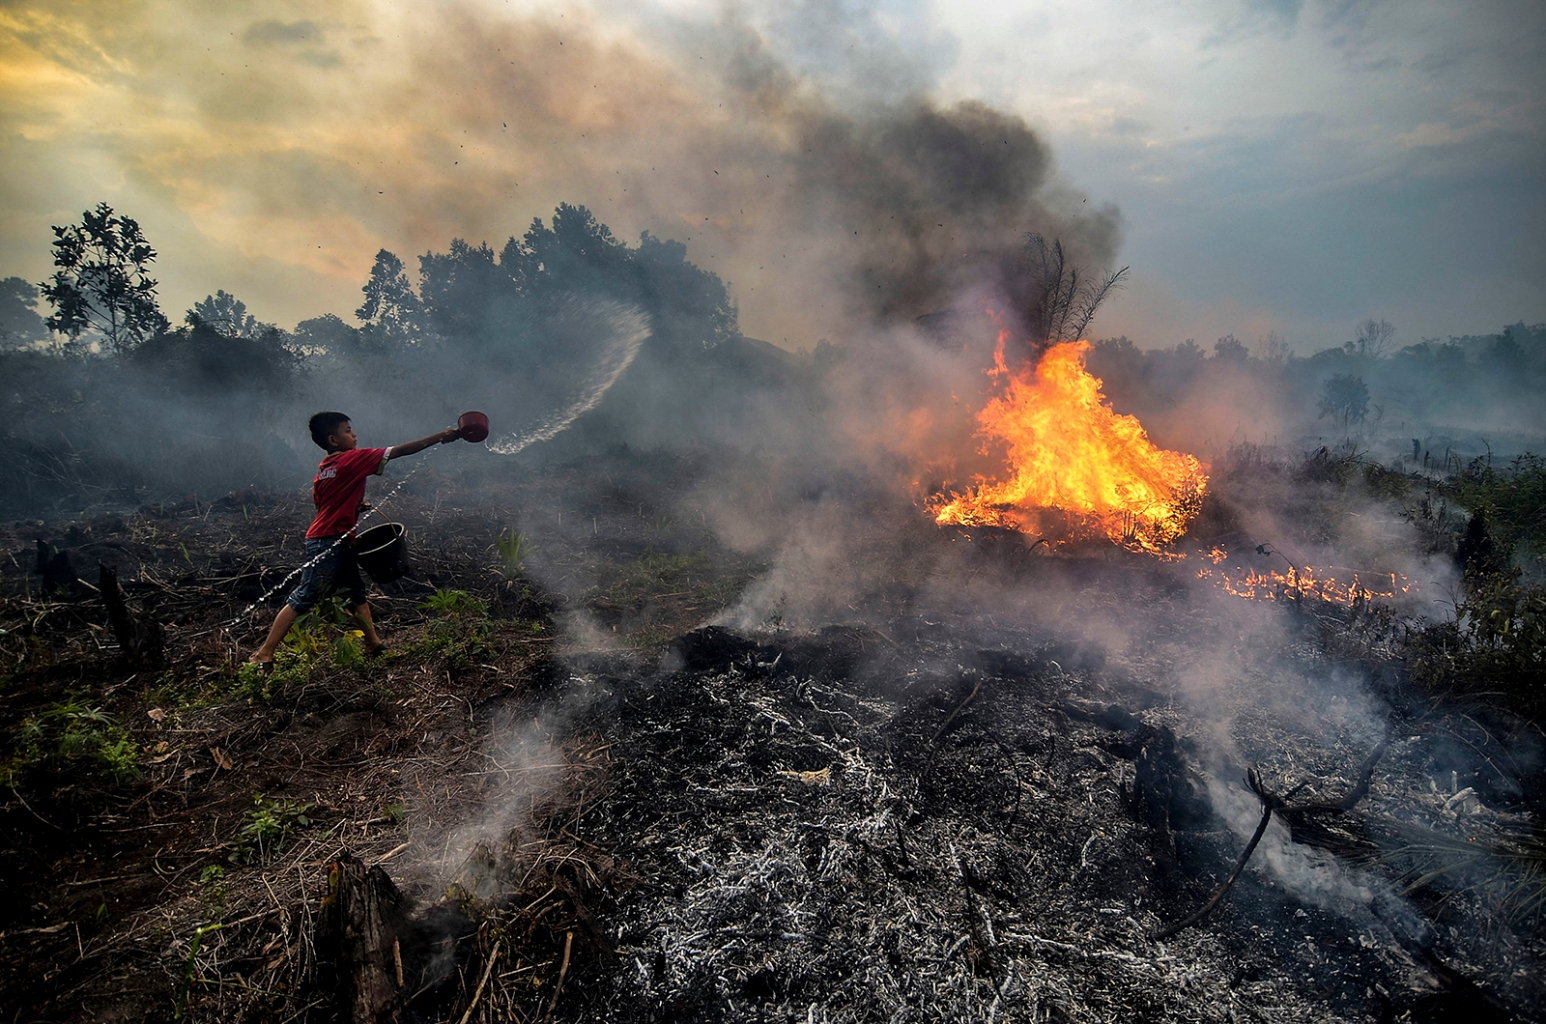 A young boy try to extinguish a fire at a peatland area near their neighbourhood in Pekanbaru, Riau province, Indonesia, on Oct. 4. WAHYUDI/AFP via Getty Images